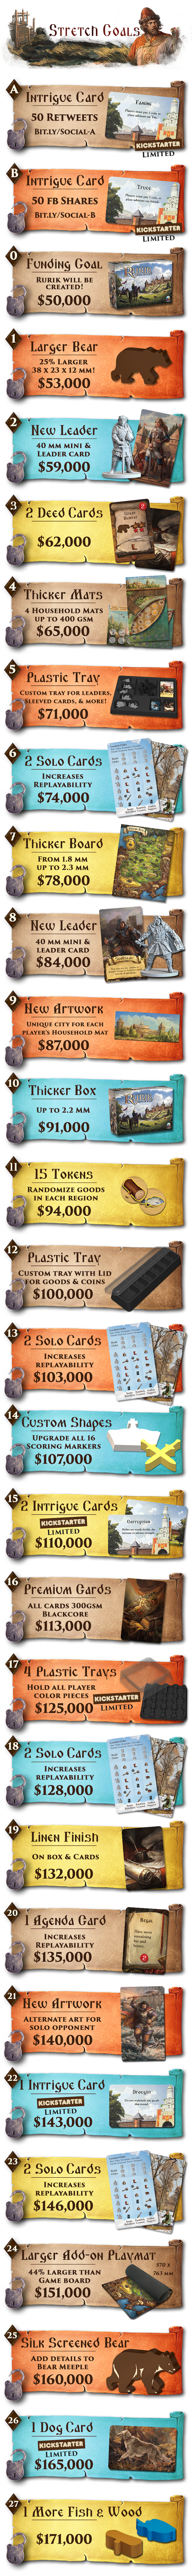 All stretch goals unlocked!